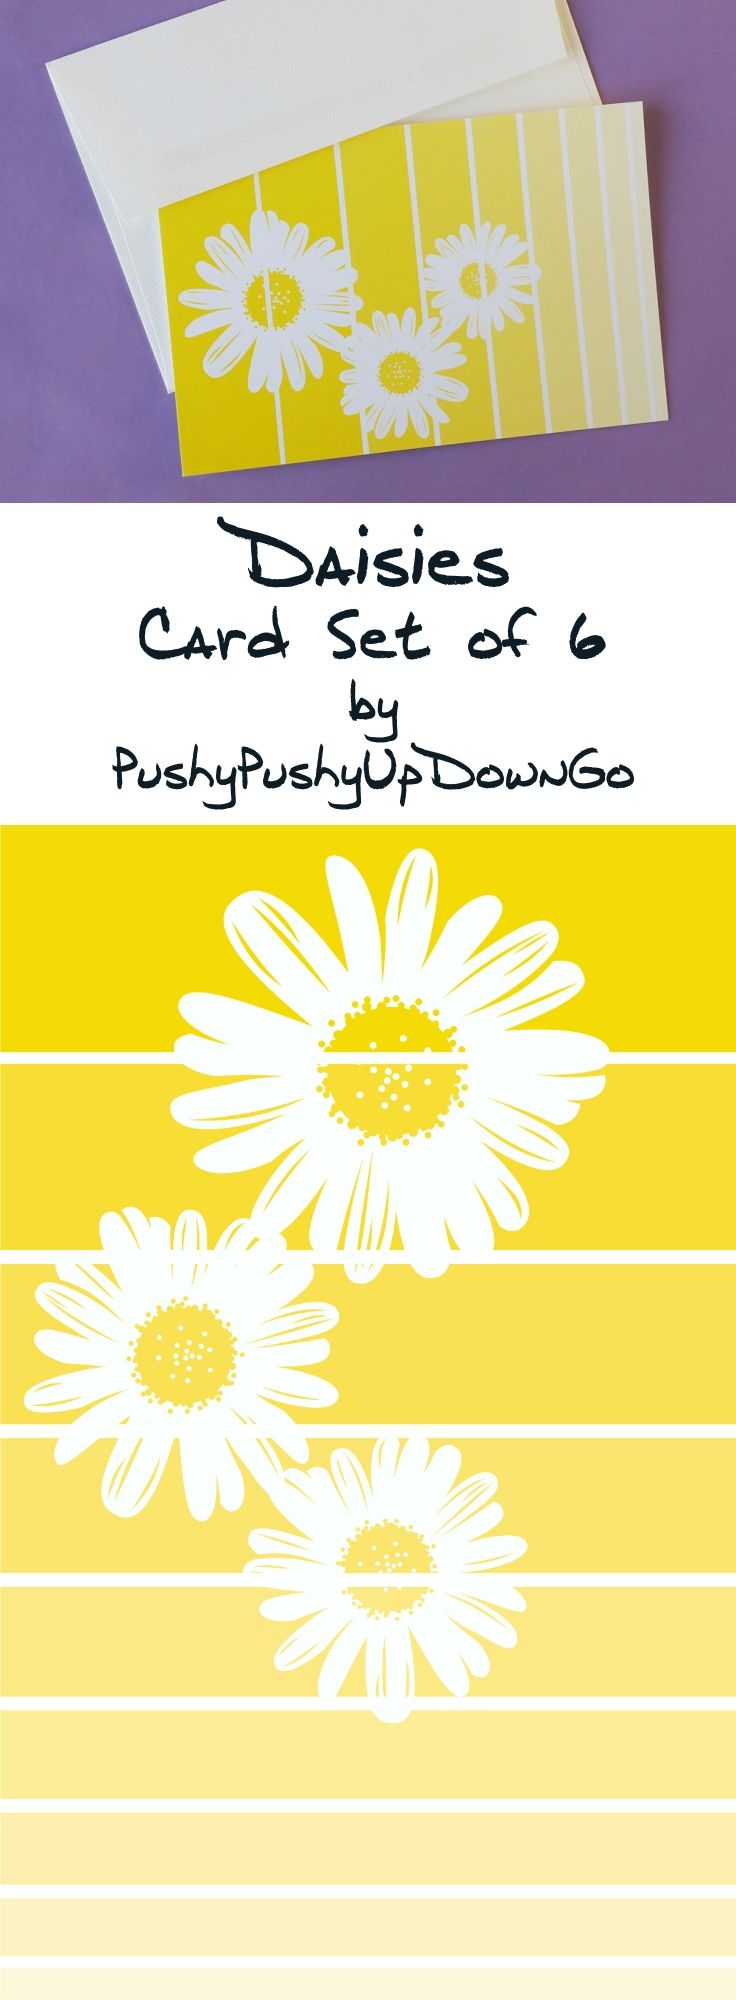 Yellow Daisy Spring Note Cards Set, Flower Art Print Greeting Card & Thank You Cards Set #card #cards #notecard #notecards #greetingcard #greetingcards4sale #greetingcardsforsale #greetingcards #flowers #flowerpower #flowercard #flowerartwork #flowerart #springtime #spring #springcardideas #summer #summertime #springflowers #summerflowers #daisy #daisies #gerberdaisies #yellowdaisy #yellowdaisies #yellow #yellowandwhite